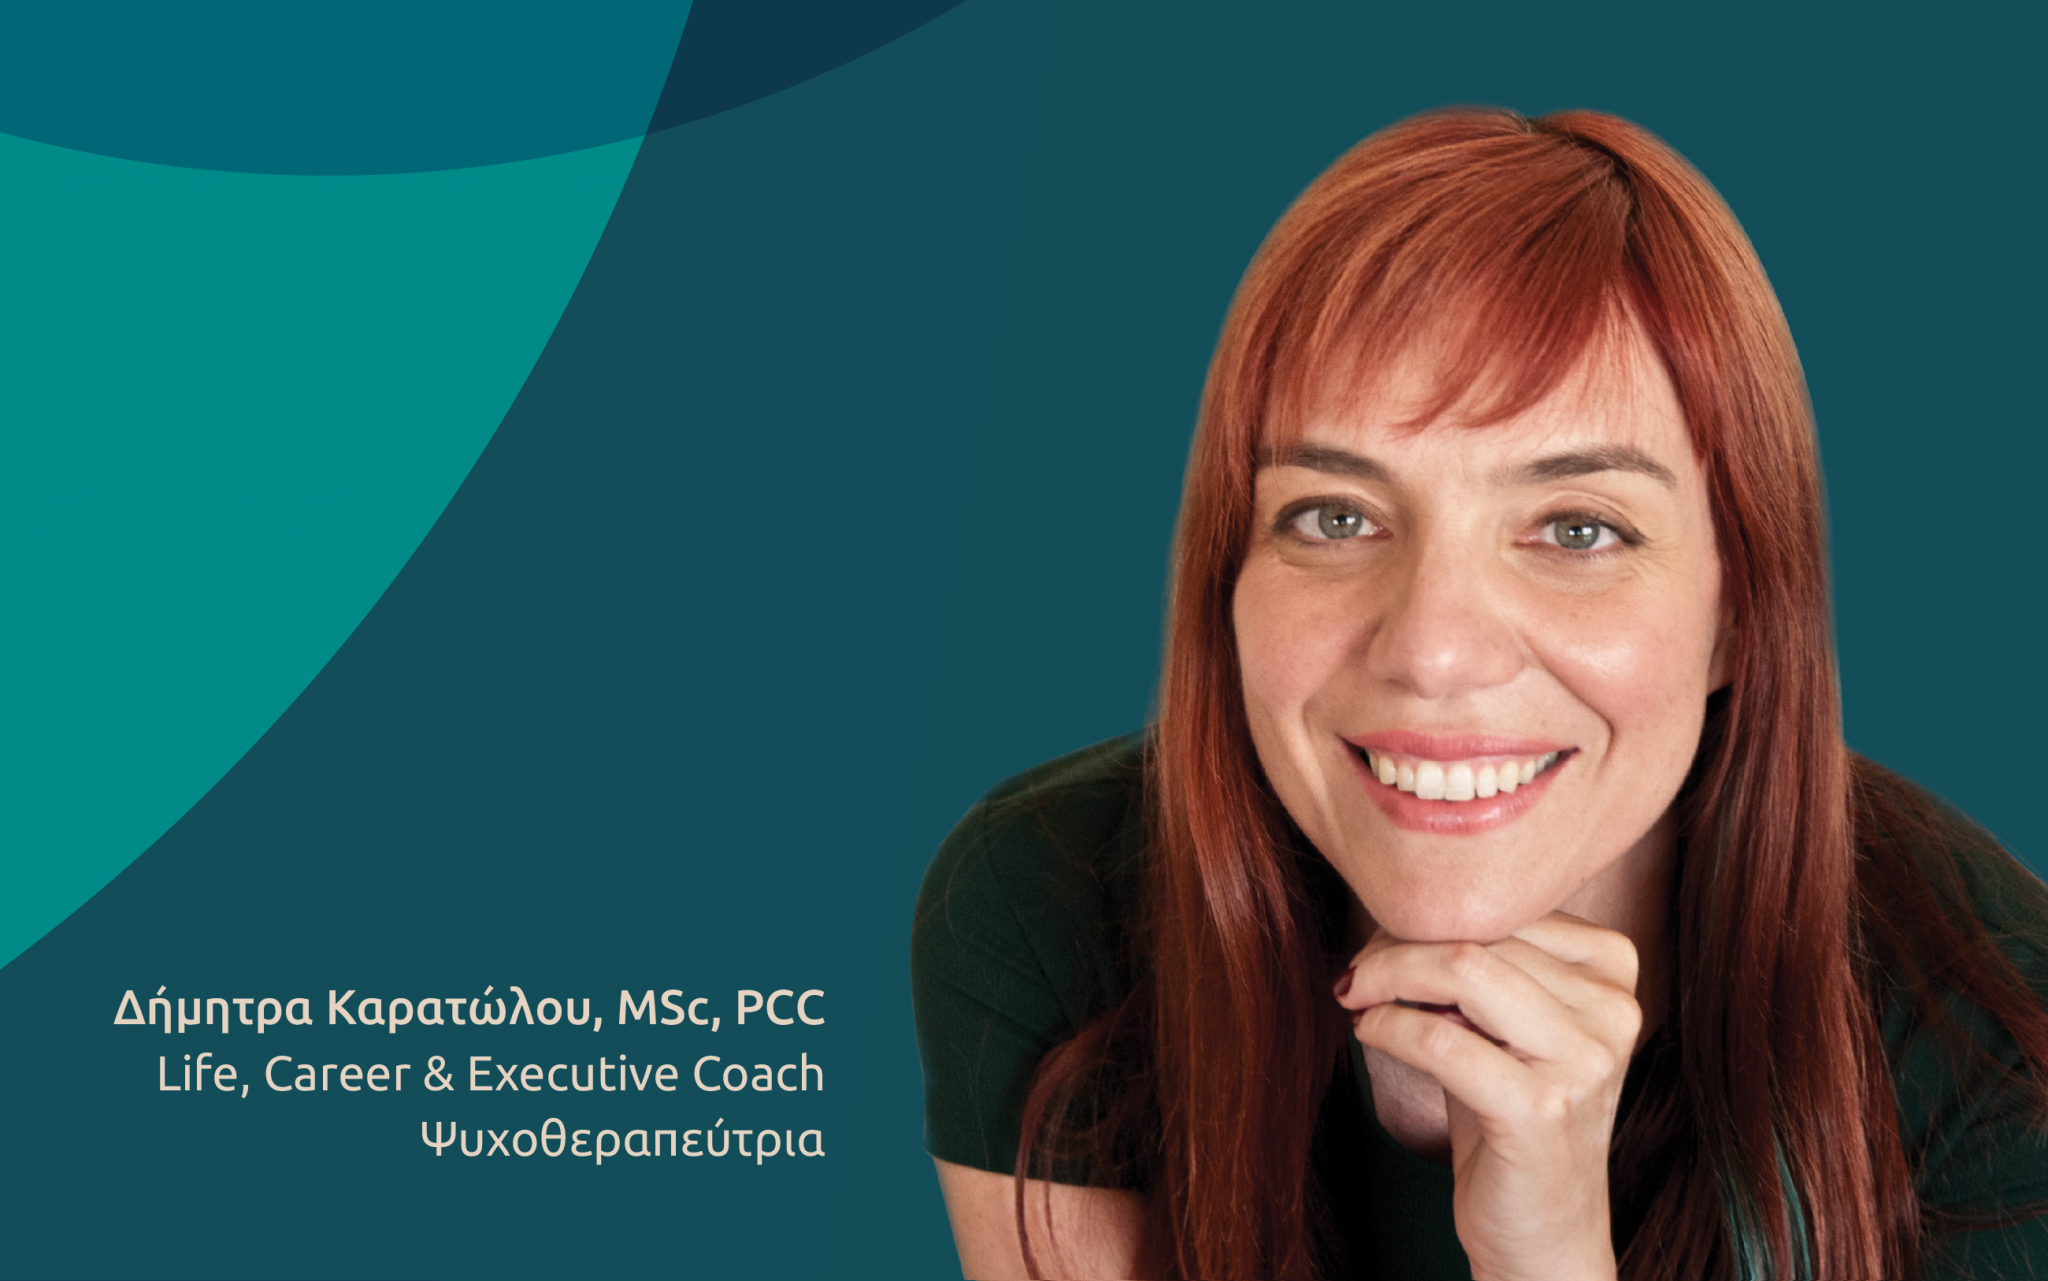 Δήμητρα Καρατώλου, MSc, PCC - Life, Career & Executive Coach